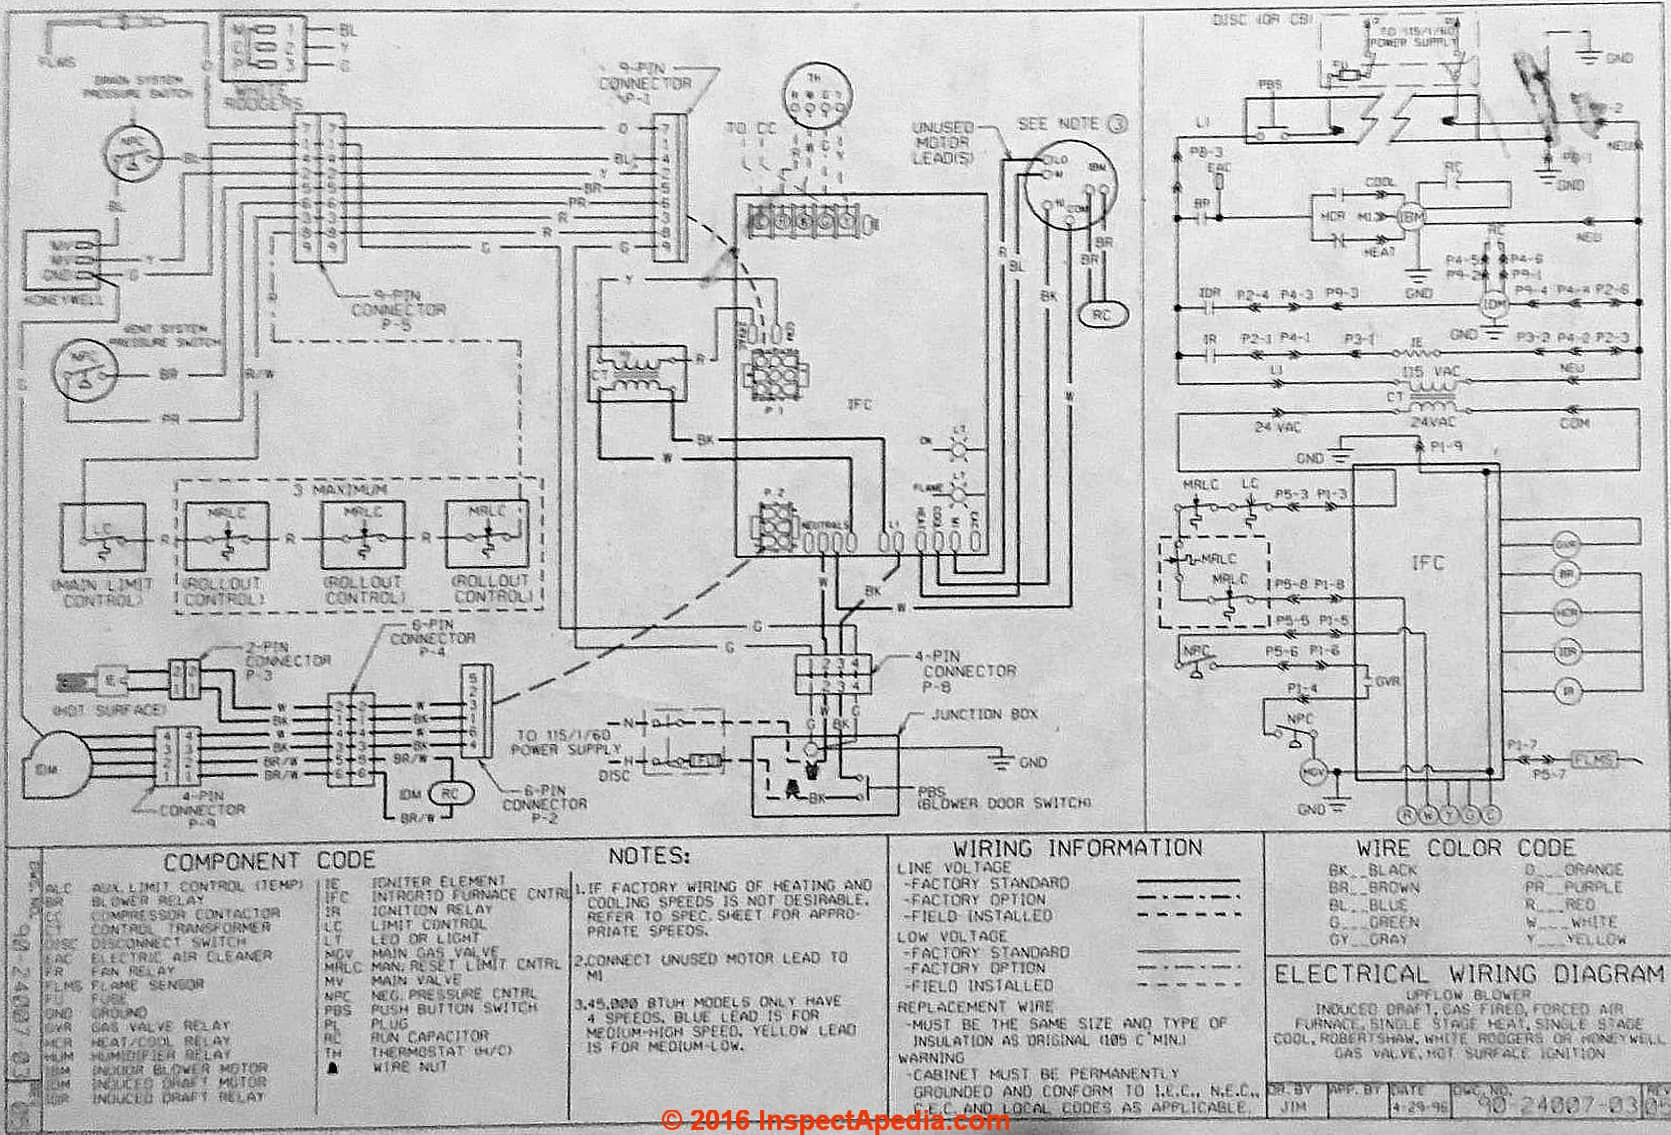 rheem heat pump wiring diagram, wiring, dometic rv ac wiring diagram